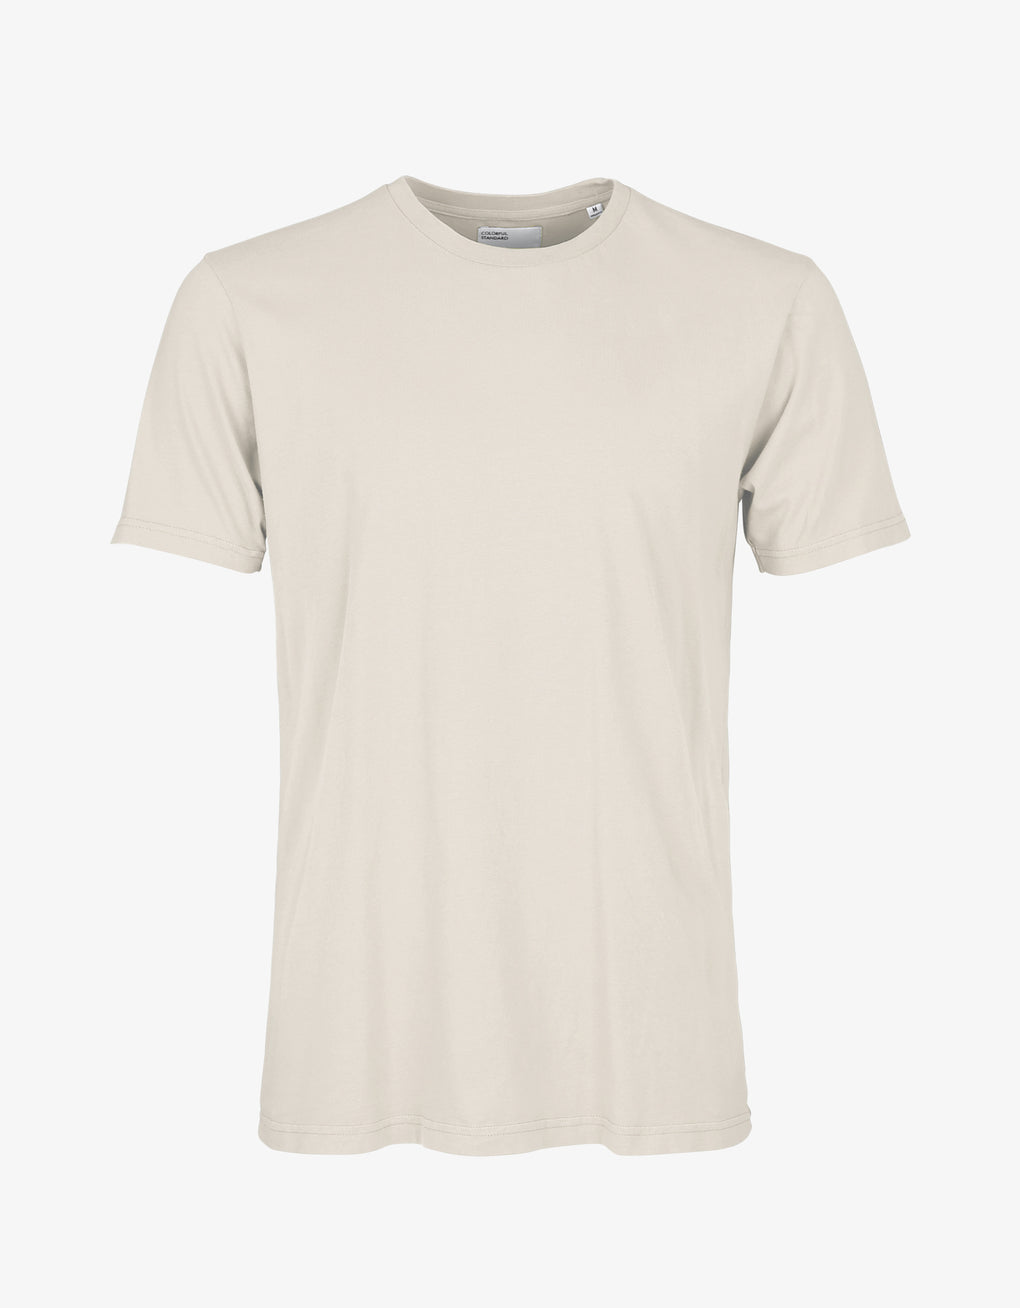 Colorful Standard Classic Organic Tee T-shirt Ivory White